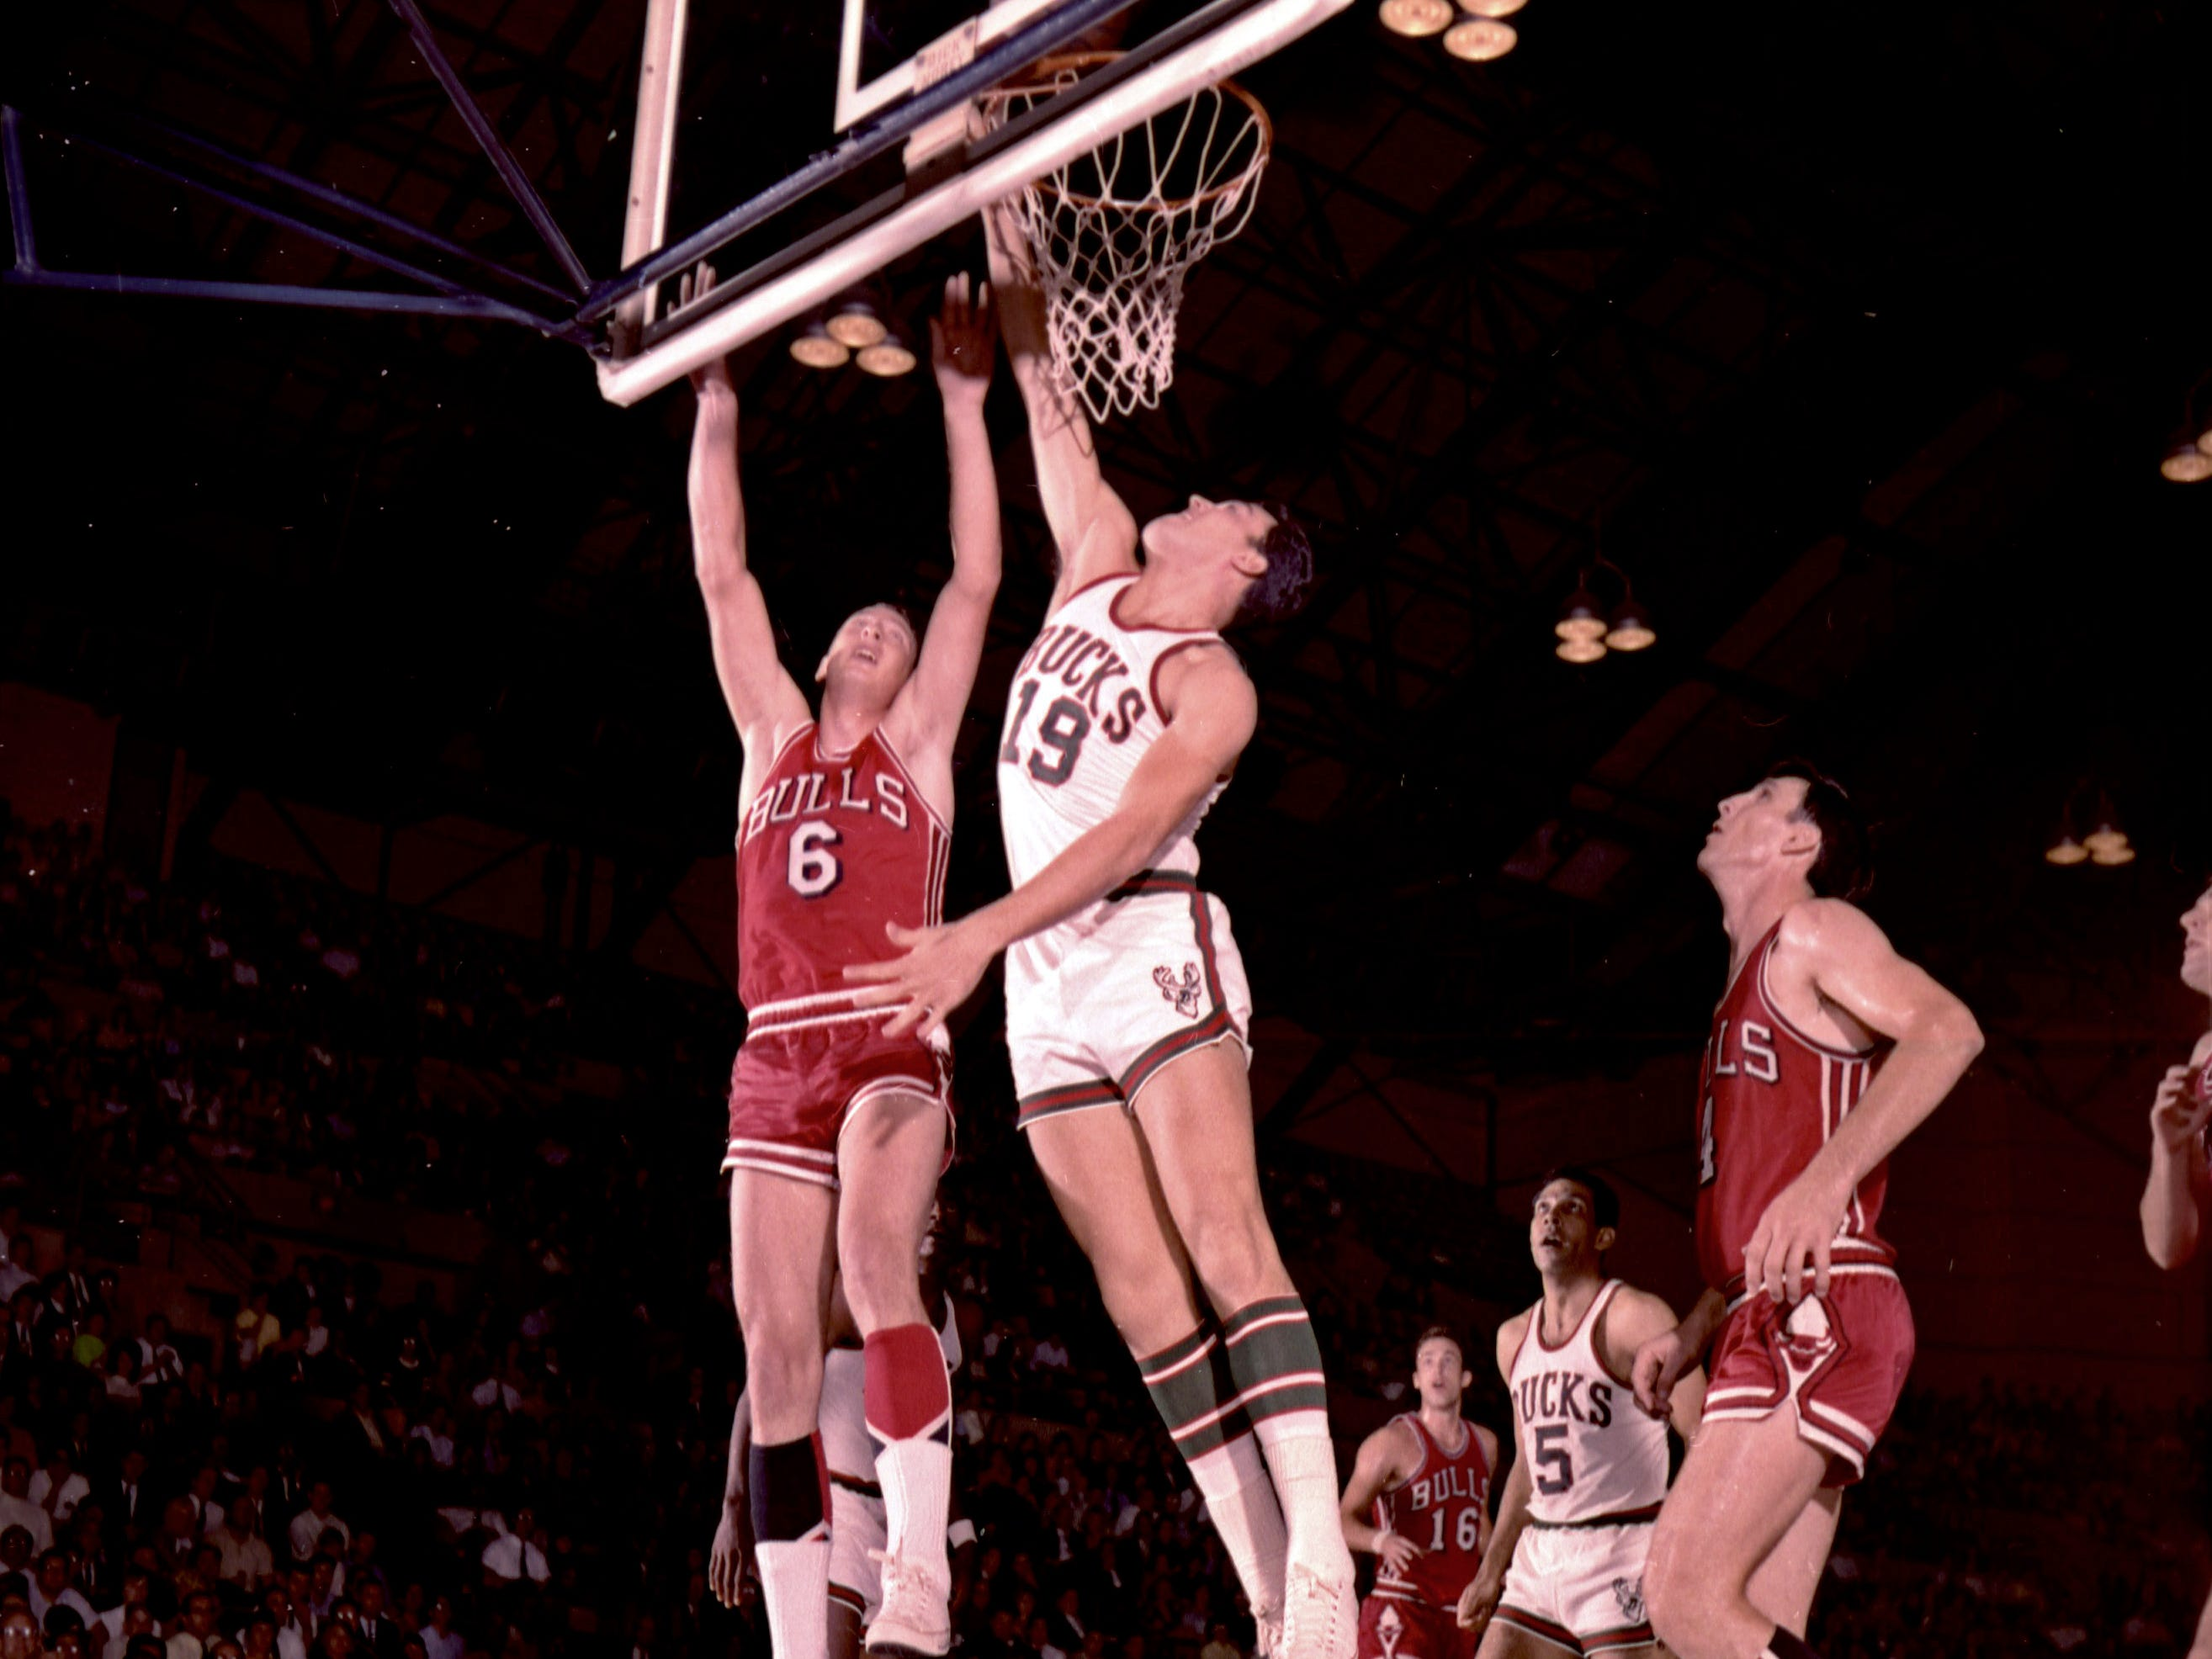 Milwaukee Bucks center Dick Cunningham (19) blocks a shot by Chicago Bulls forwrad Erwin Mueller (6) in the Bucks' inaugural regular-season NBA game on Oct. 16, 1968, at the Milwaukee Arena. Bulls guard Jerry Sloan (4) looks on. The Bucks lost, 89-84.